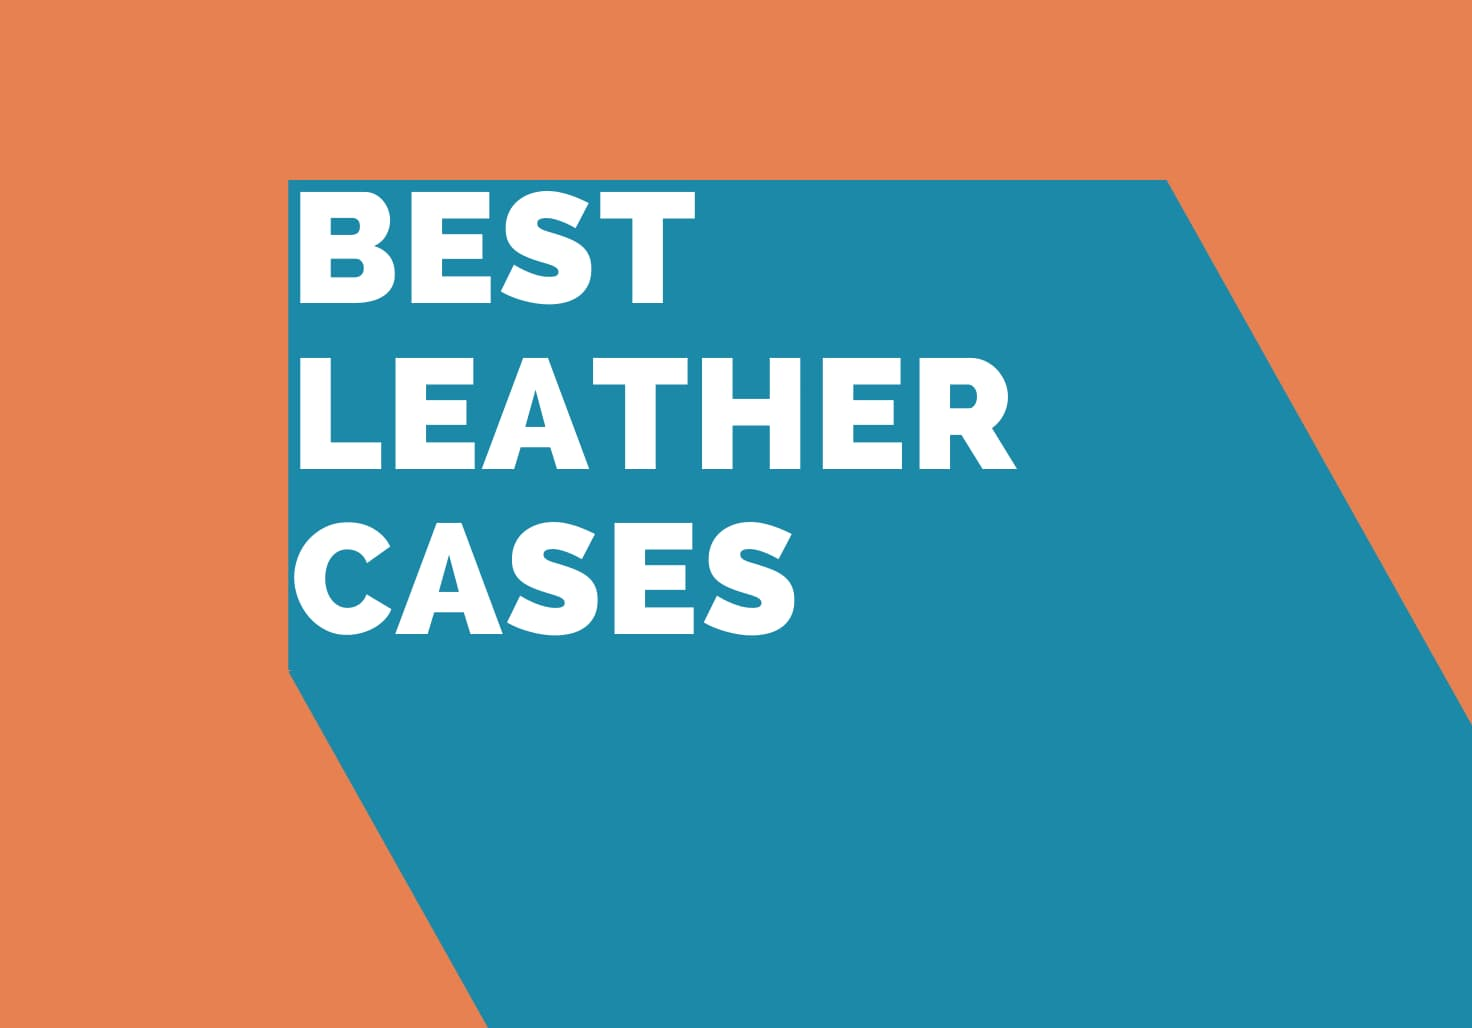 The best leather cases for iPhone 12